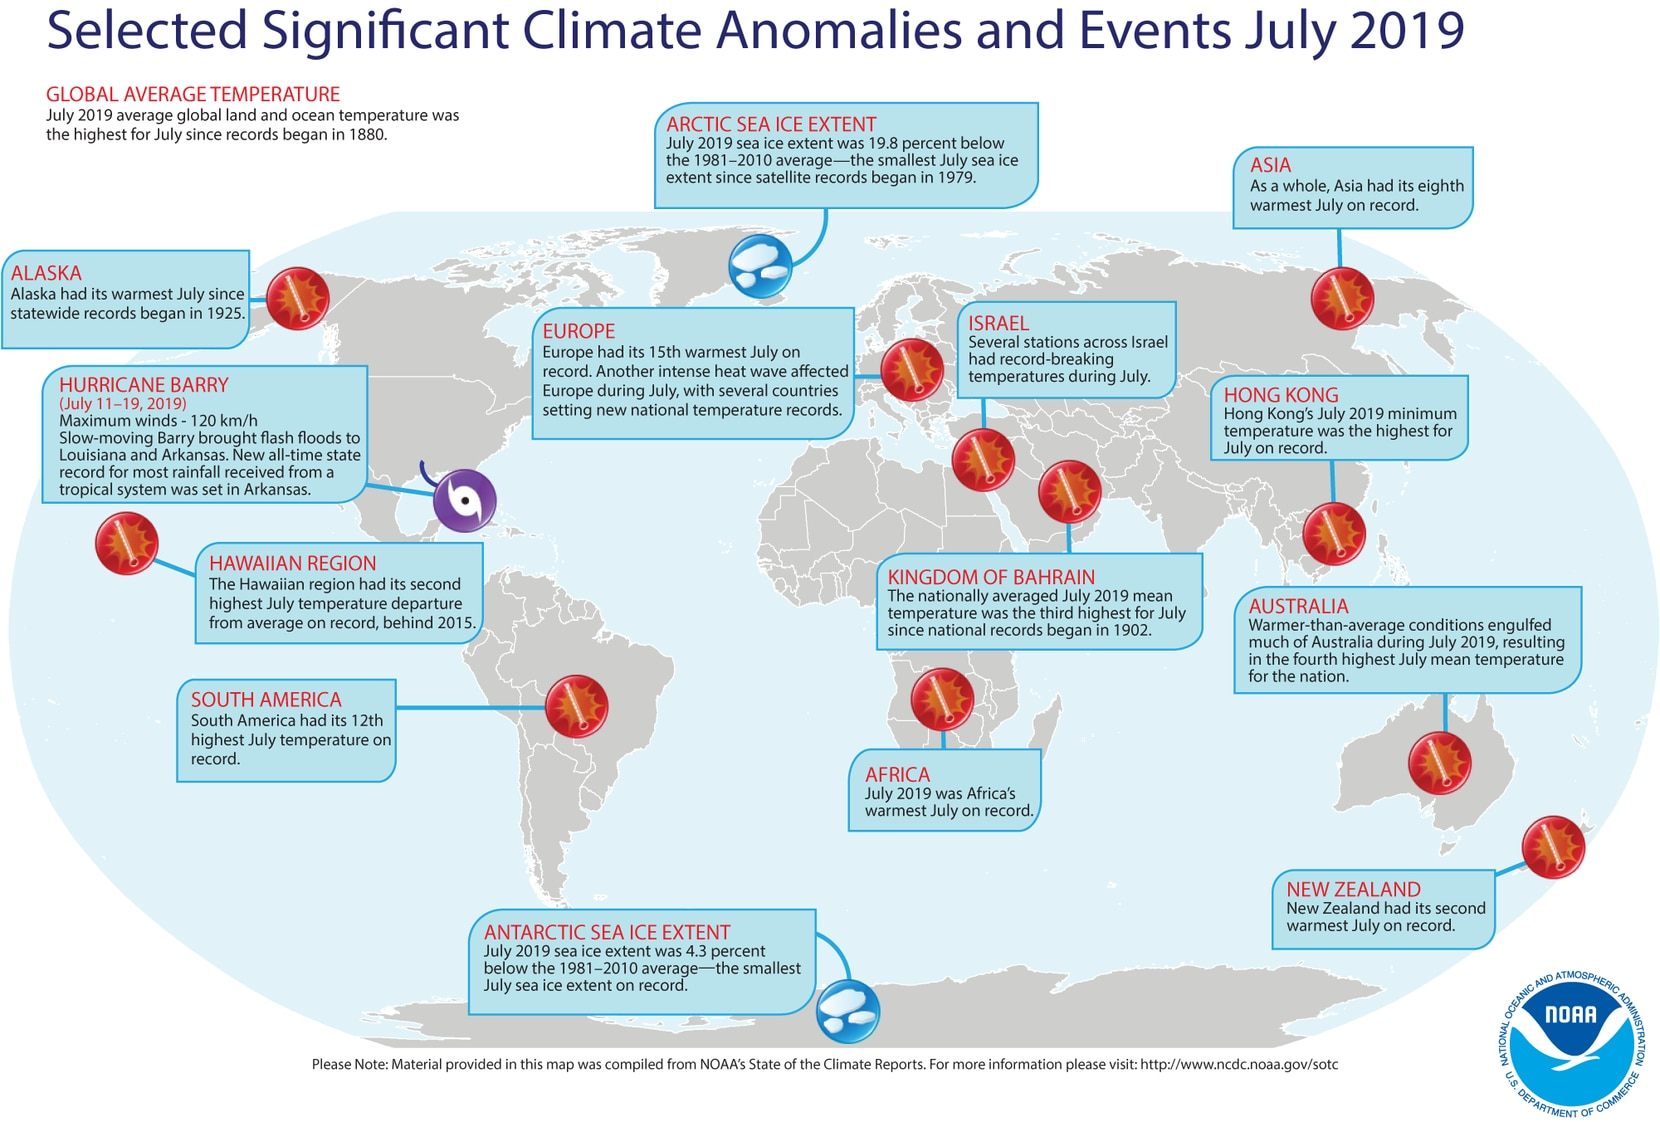 This map shows climate anomalies worldwide during July 2019.